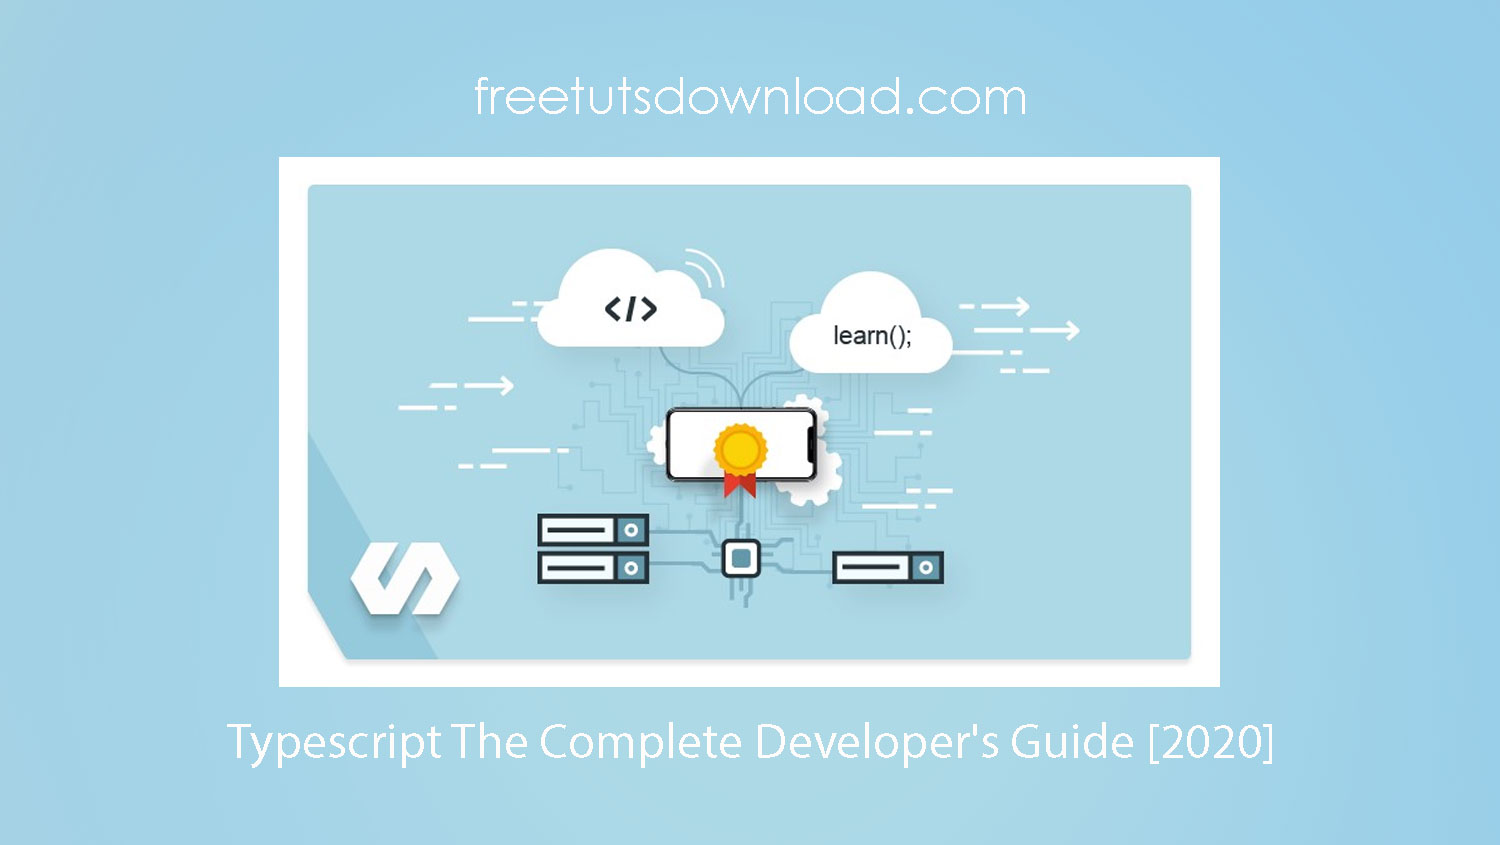 Typescript The Complete Developer's Guide [2020]